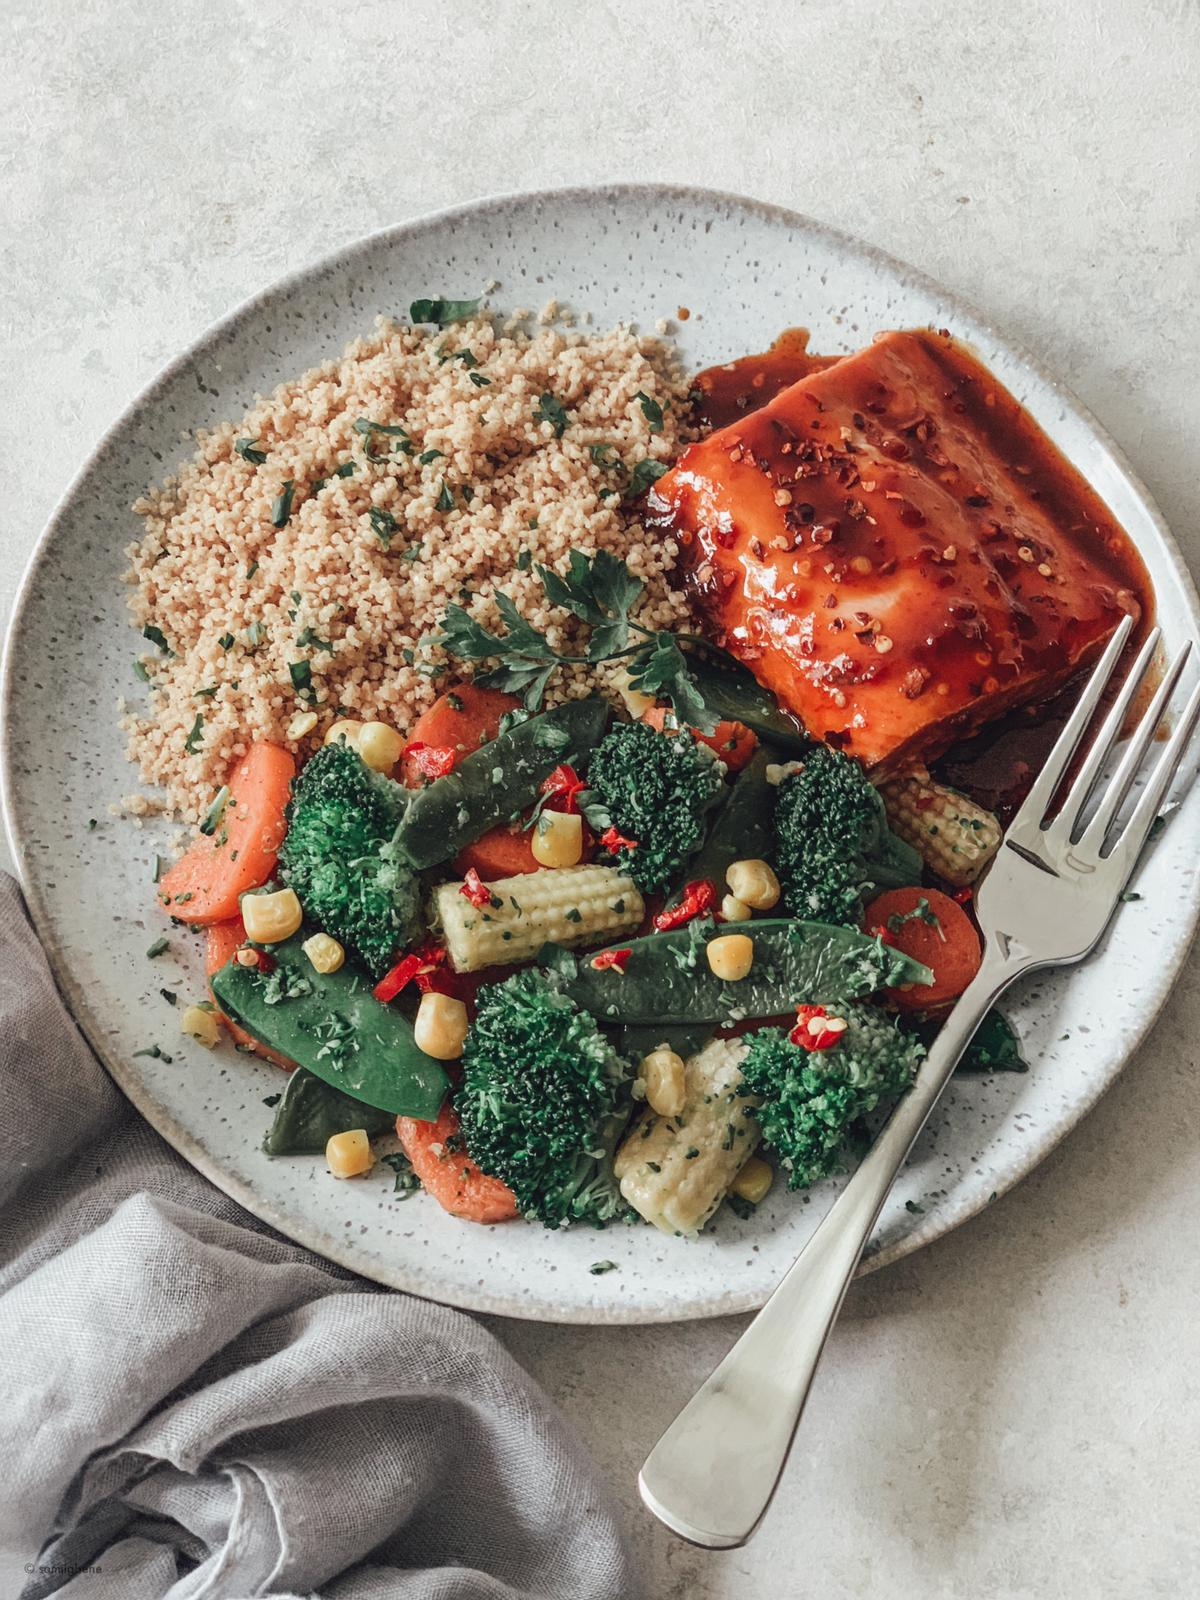 Firecracker Salmon with Herbed Couscous and Stir-fried Veggies